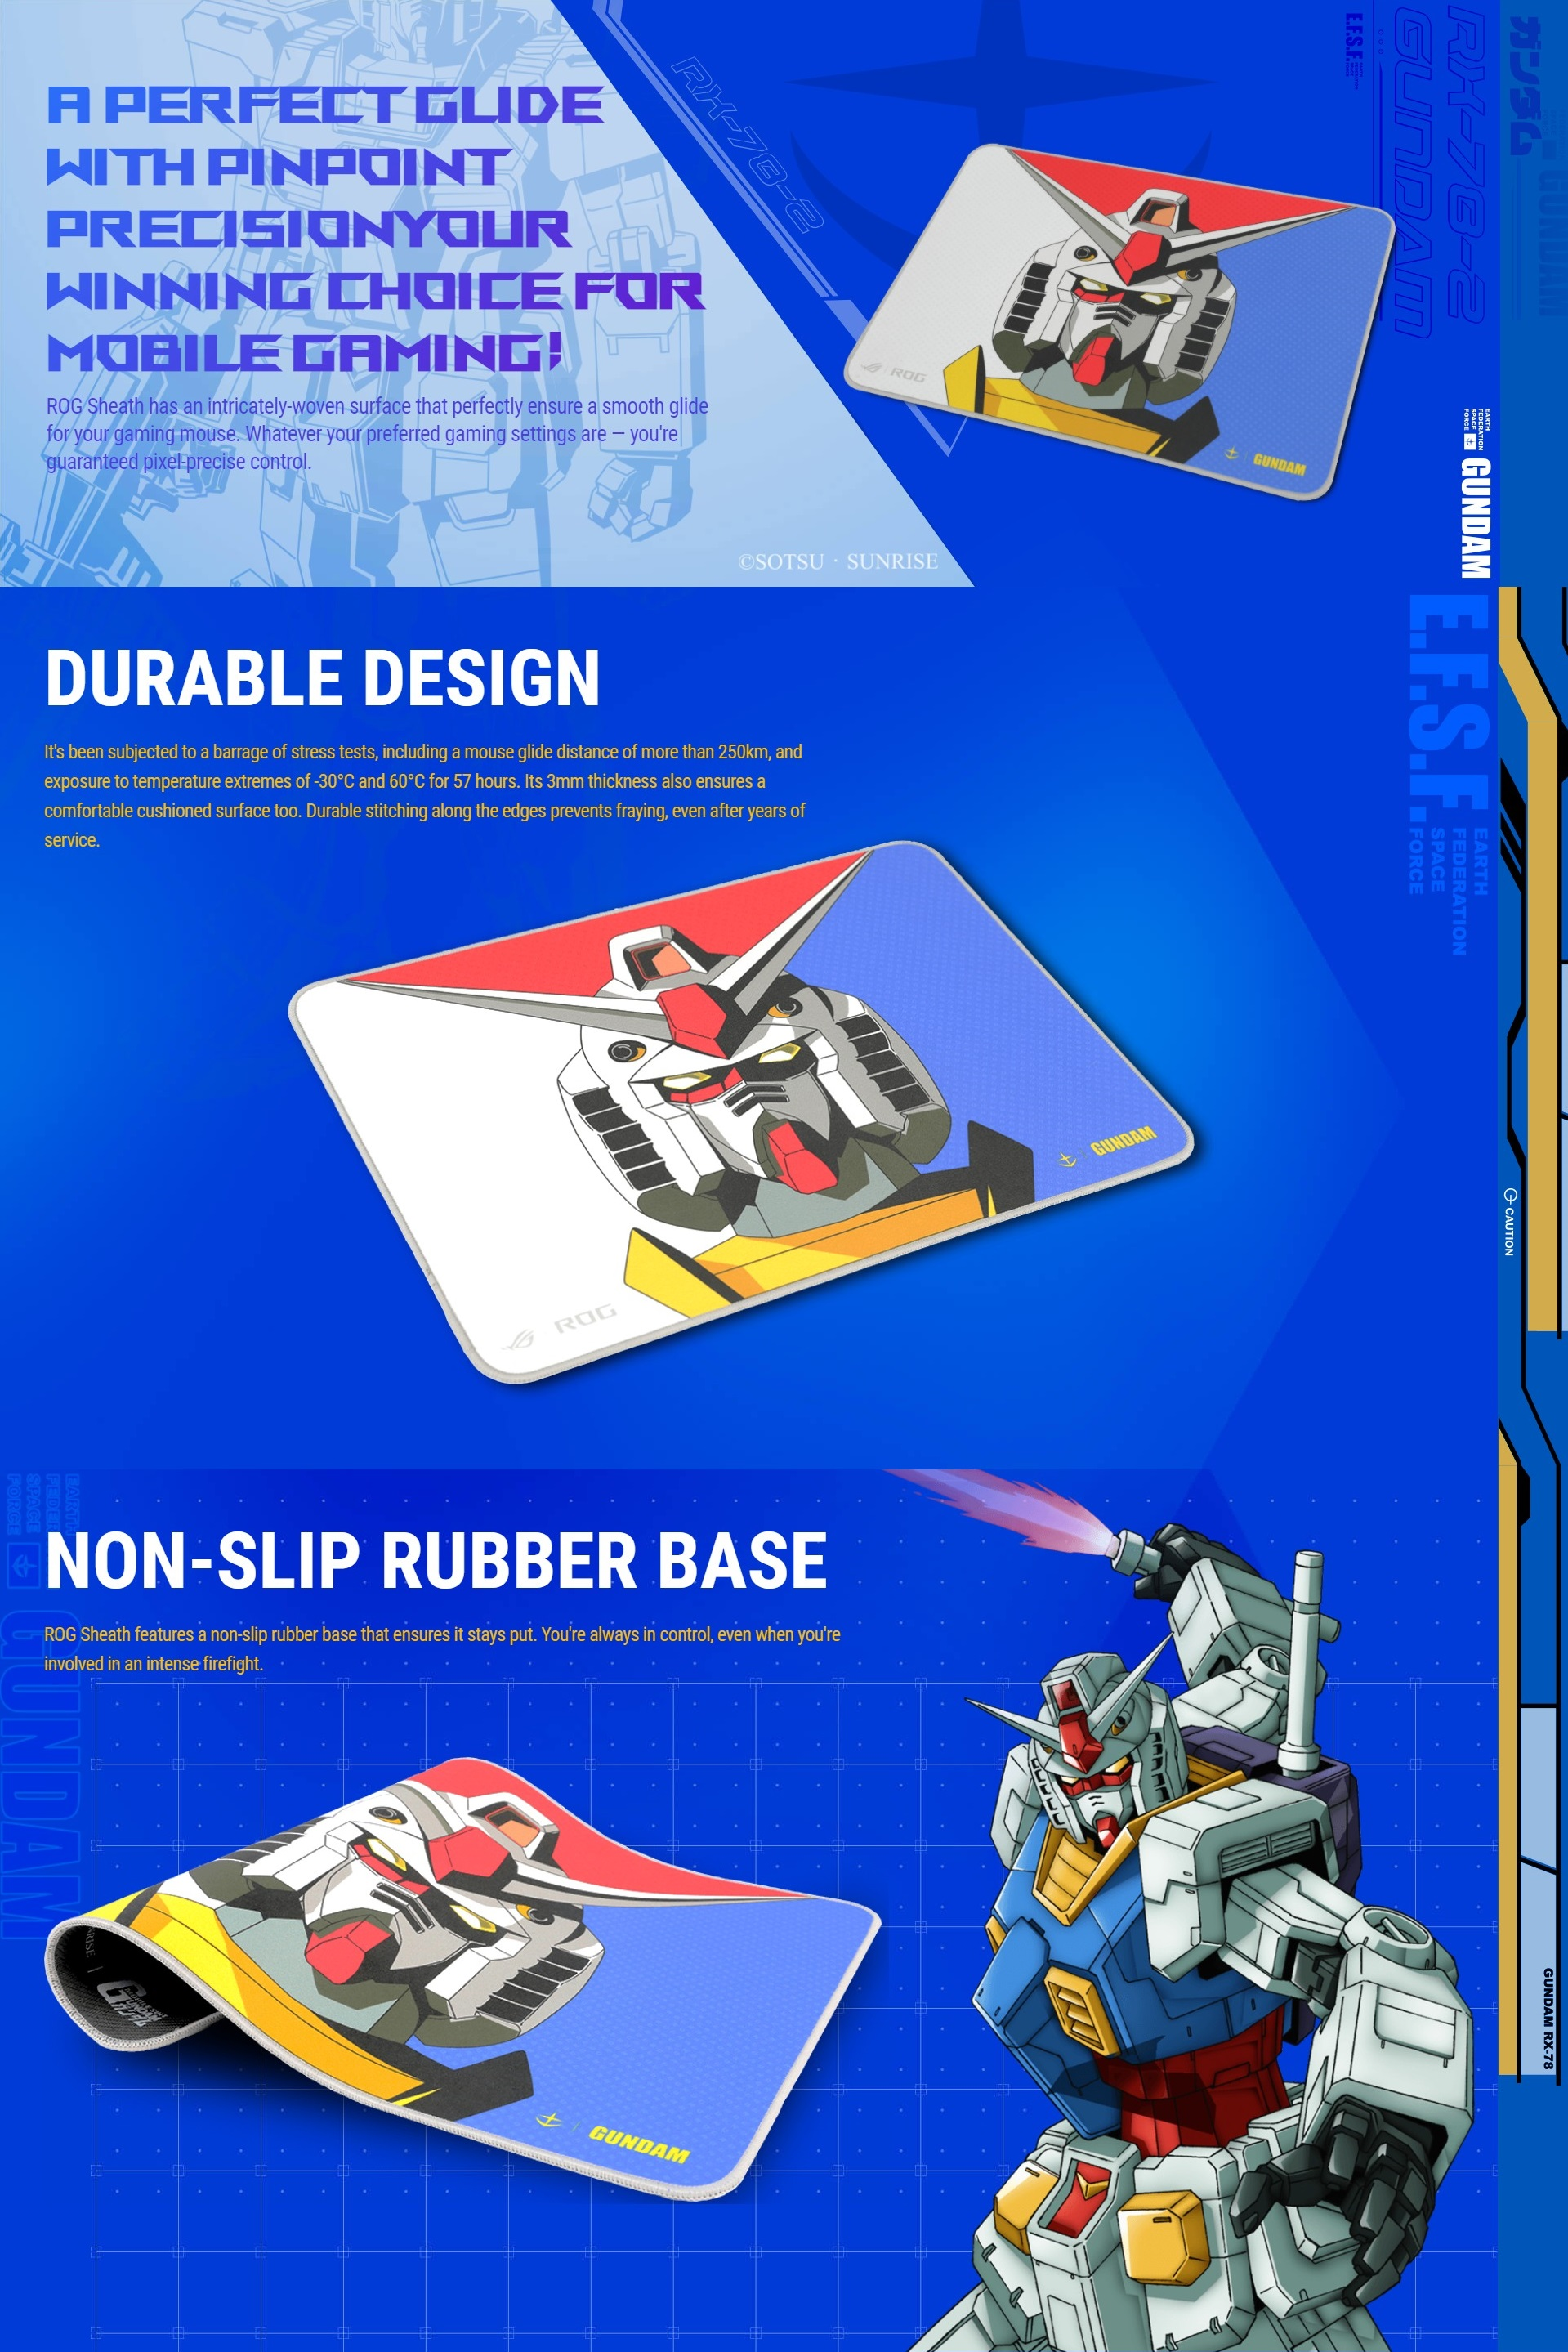 A large marketing image providing additional information about the product ASUS ROG Sheath Gaming Mousemat - Gundam - Additional alt info not provided